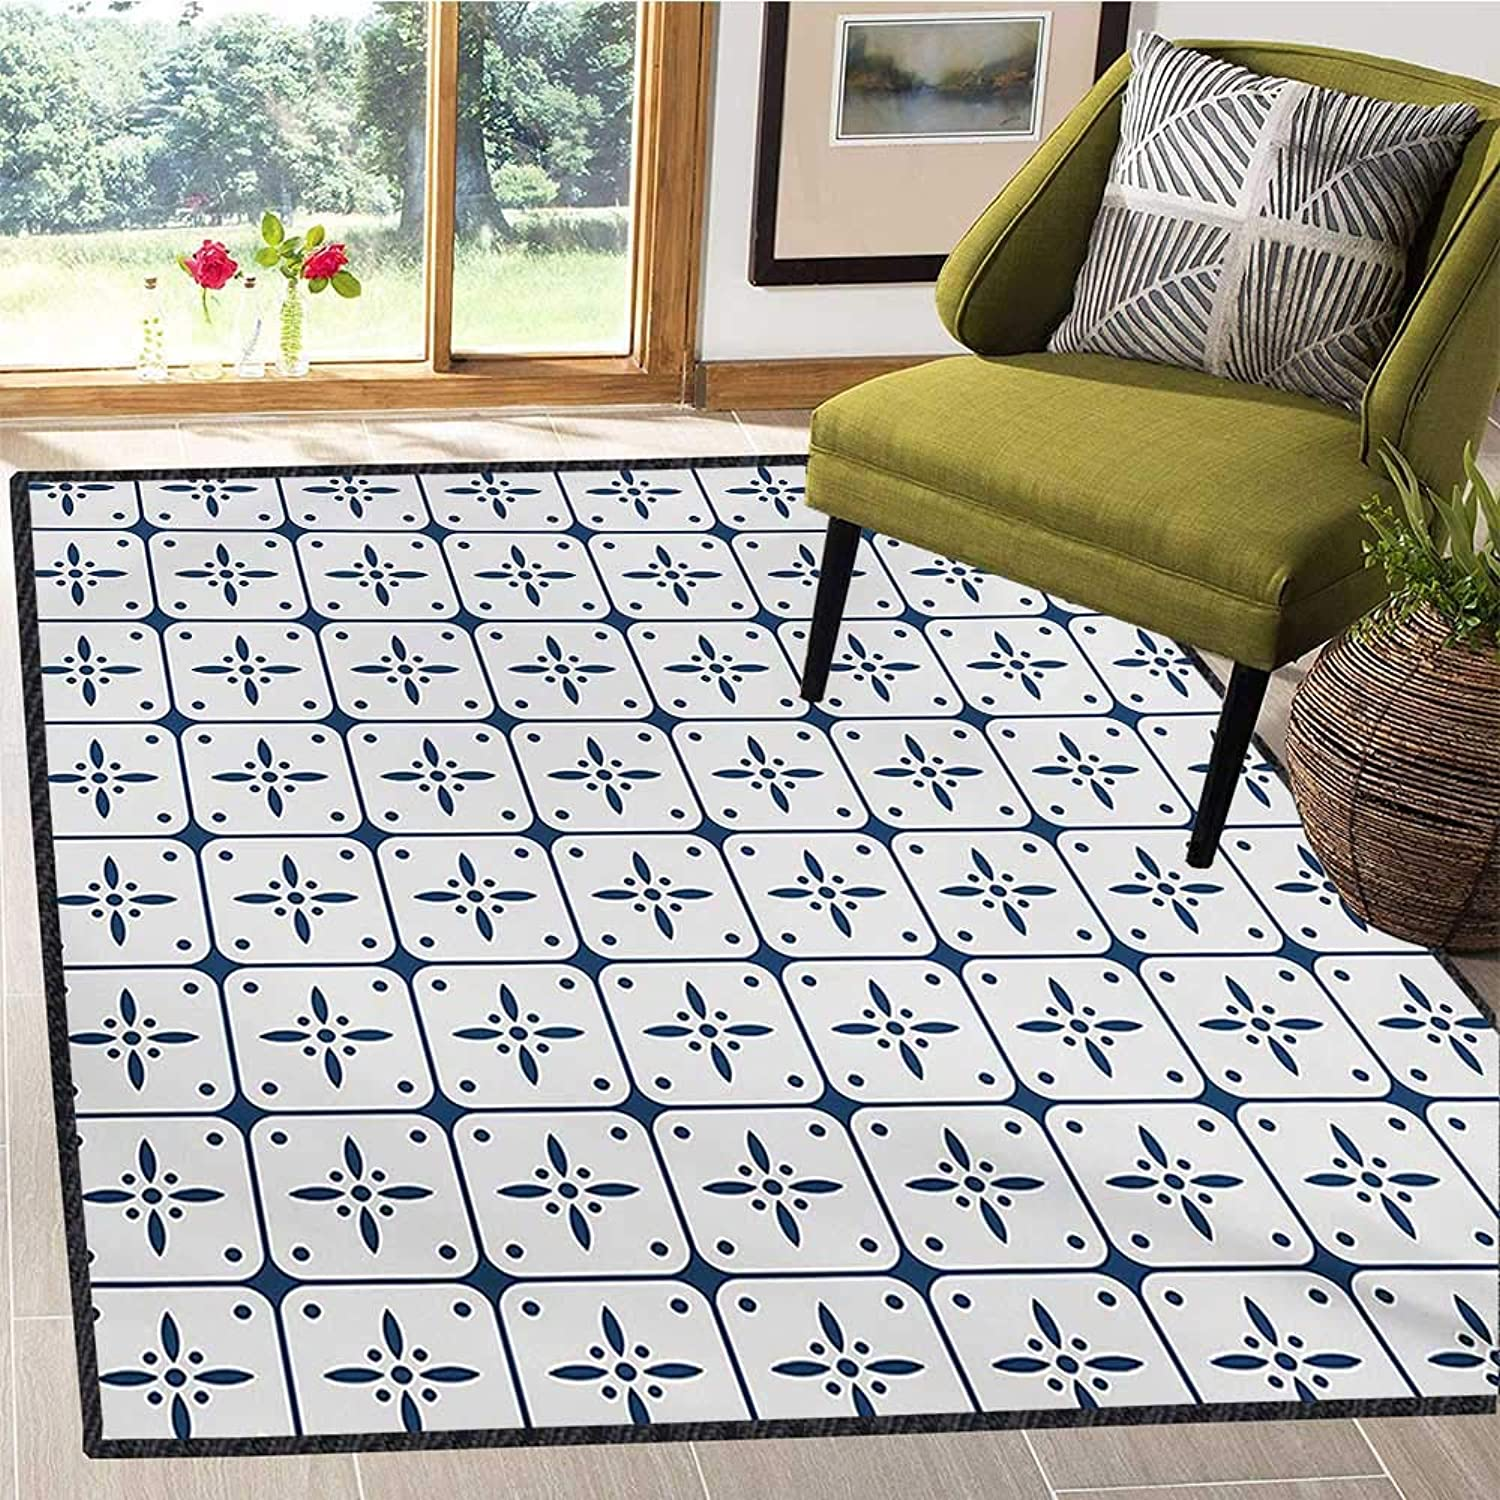 Dutch, Floor Mat for Kids, Classical Holland Delft Pattern with Checkered Squares with Flower Motifs, Door Mats for Inside Non Slip Backing 4x6 Ft Dark bluee and White